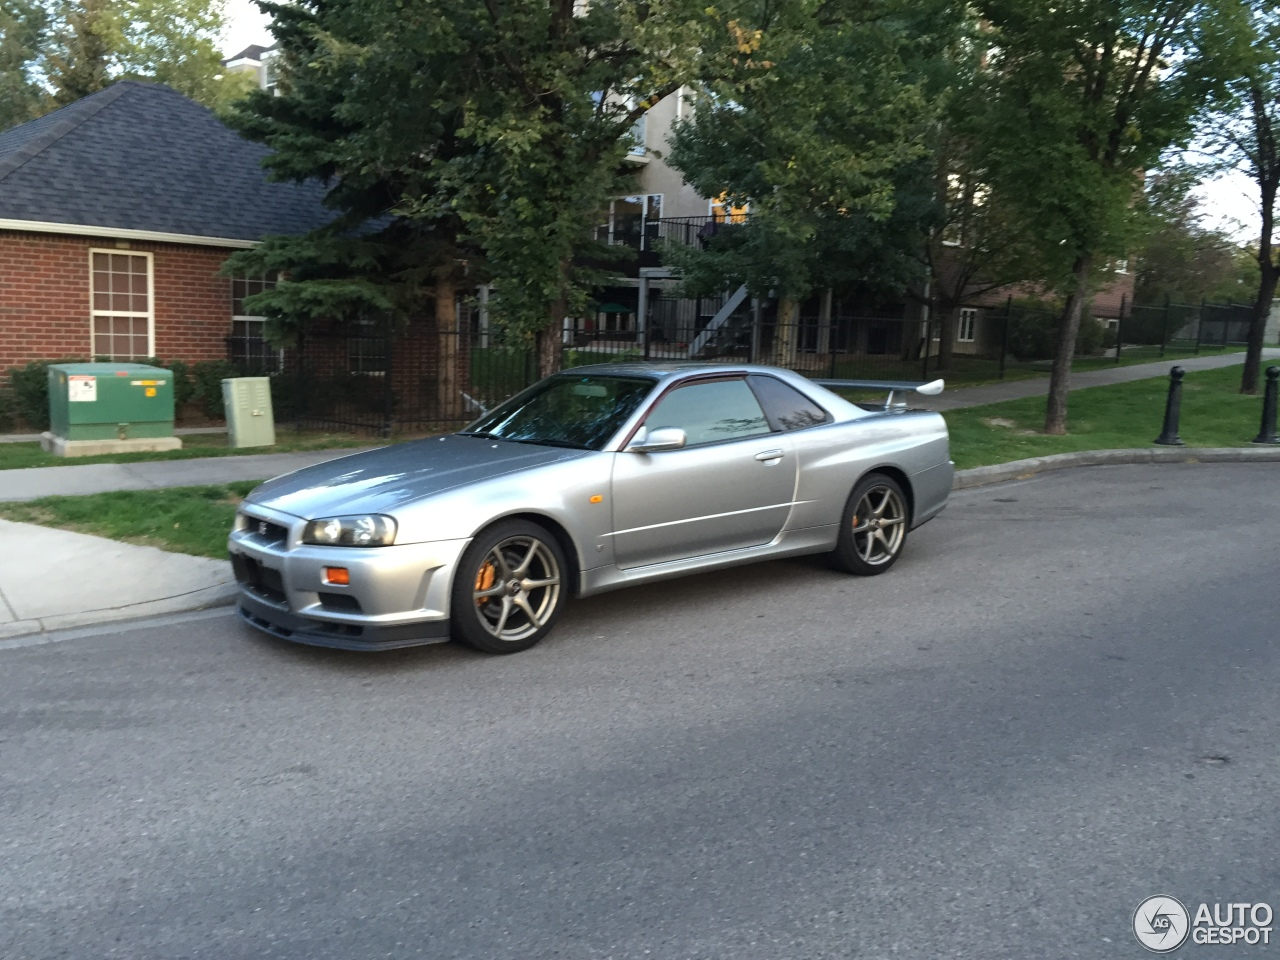 skyline r34 for sale in canada 2013 autos post. Black Bedroom Furniture Sets. Home Design Ideas